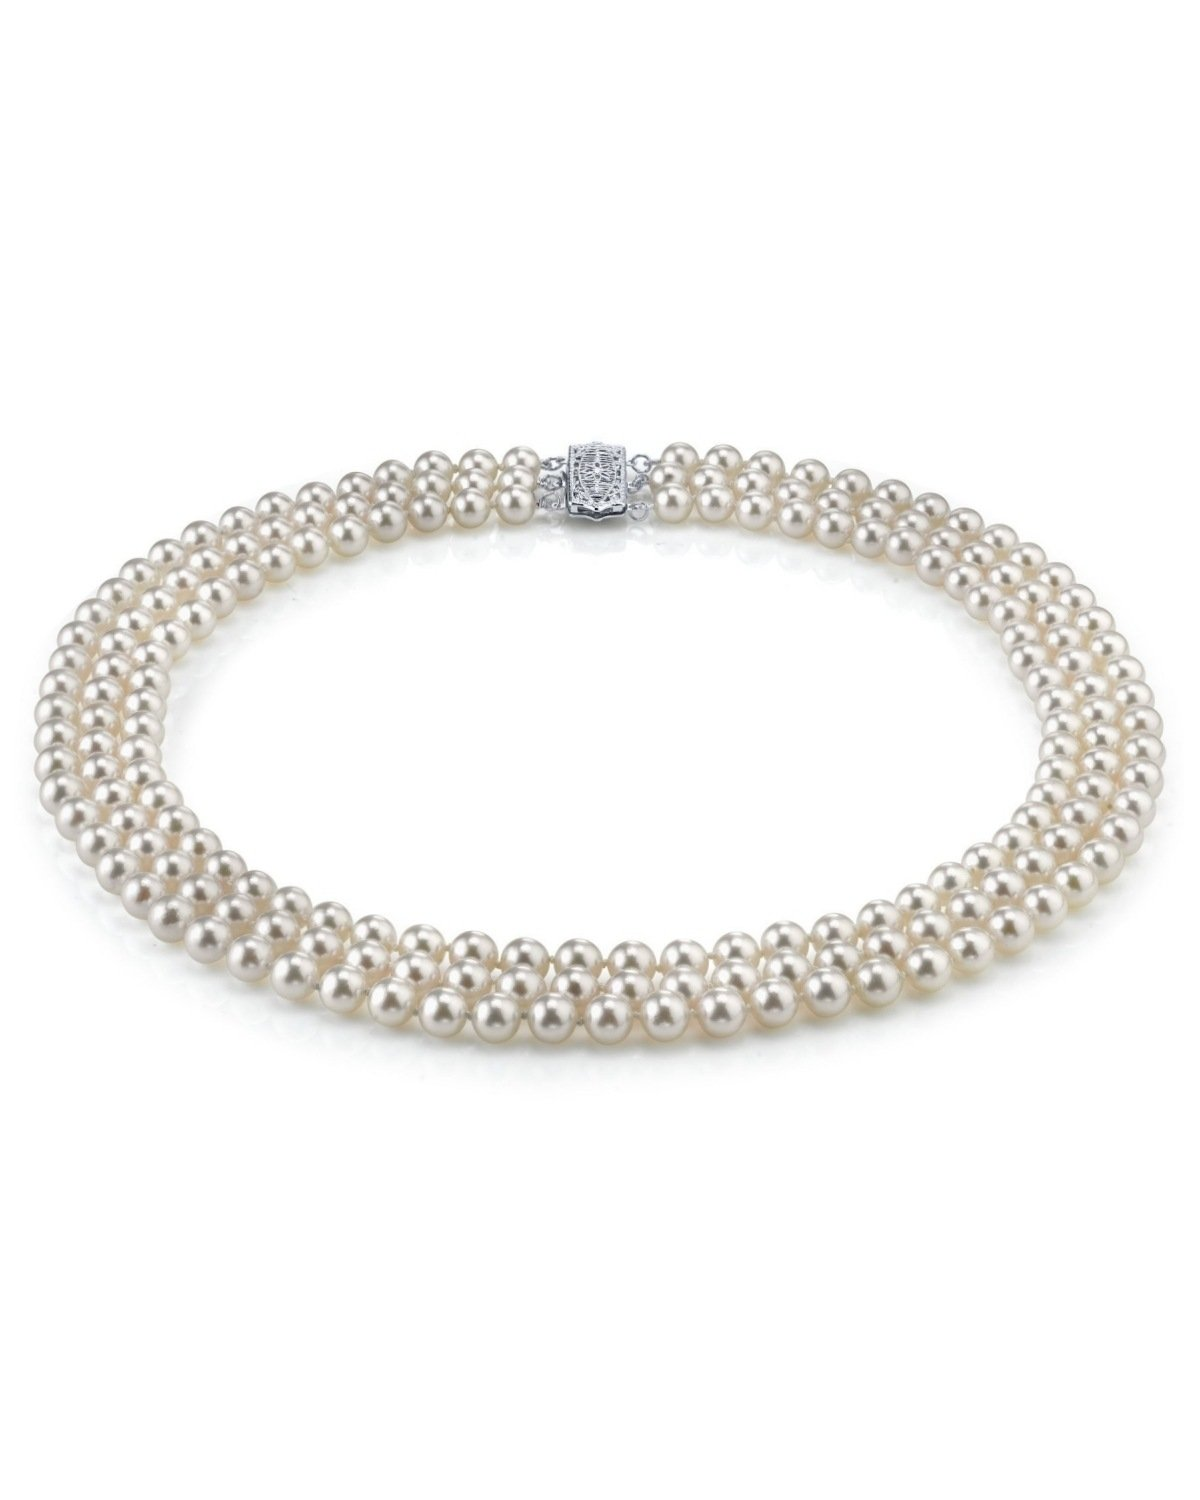 8-9mm Sterling Silver Triple Strand White Freshwater Cultured Pearl Necklace, 18-19-20'' Length - AAA Quality